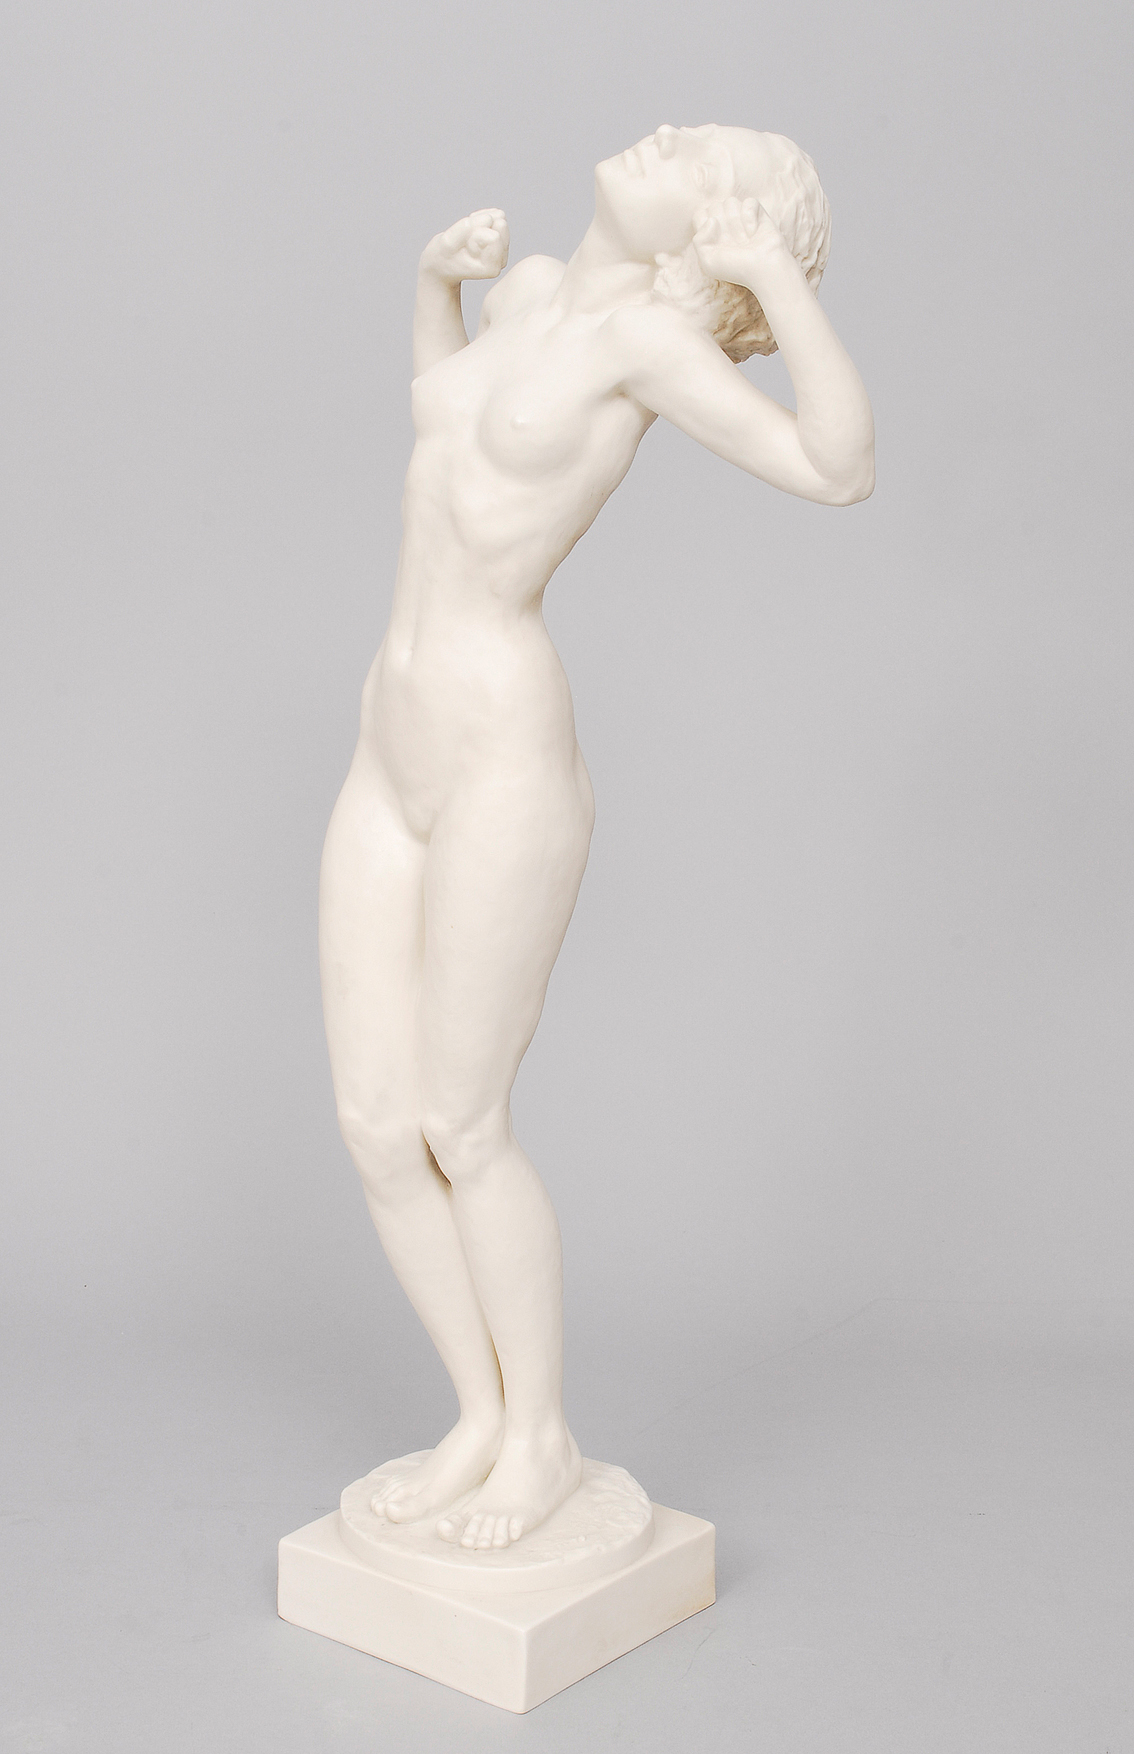 A large figure of a female nude